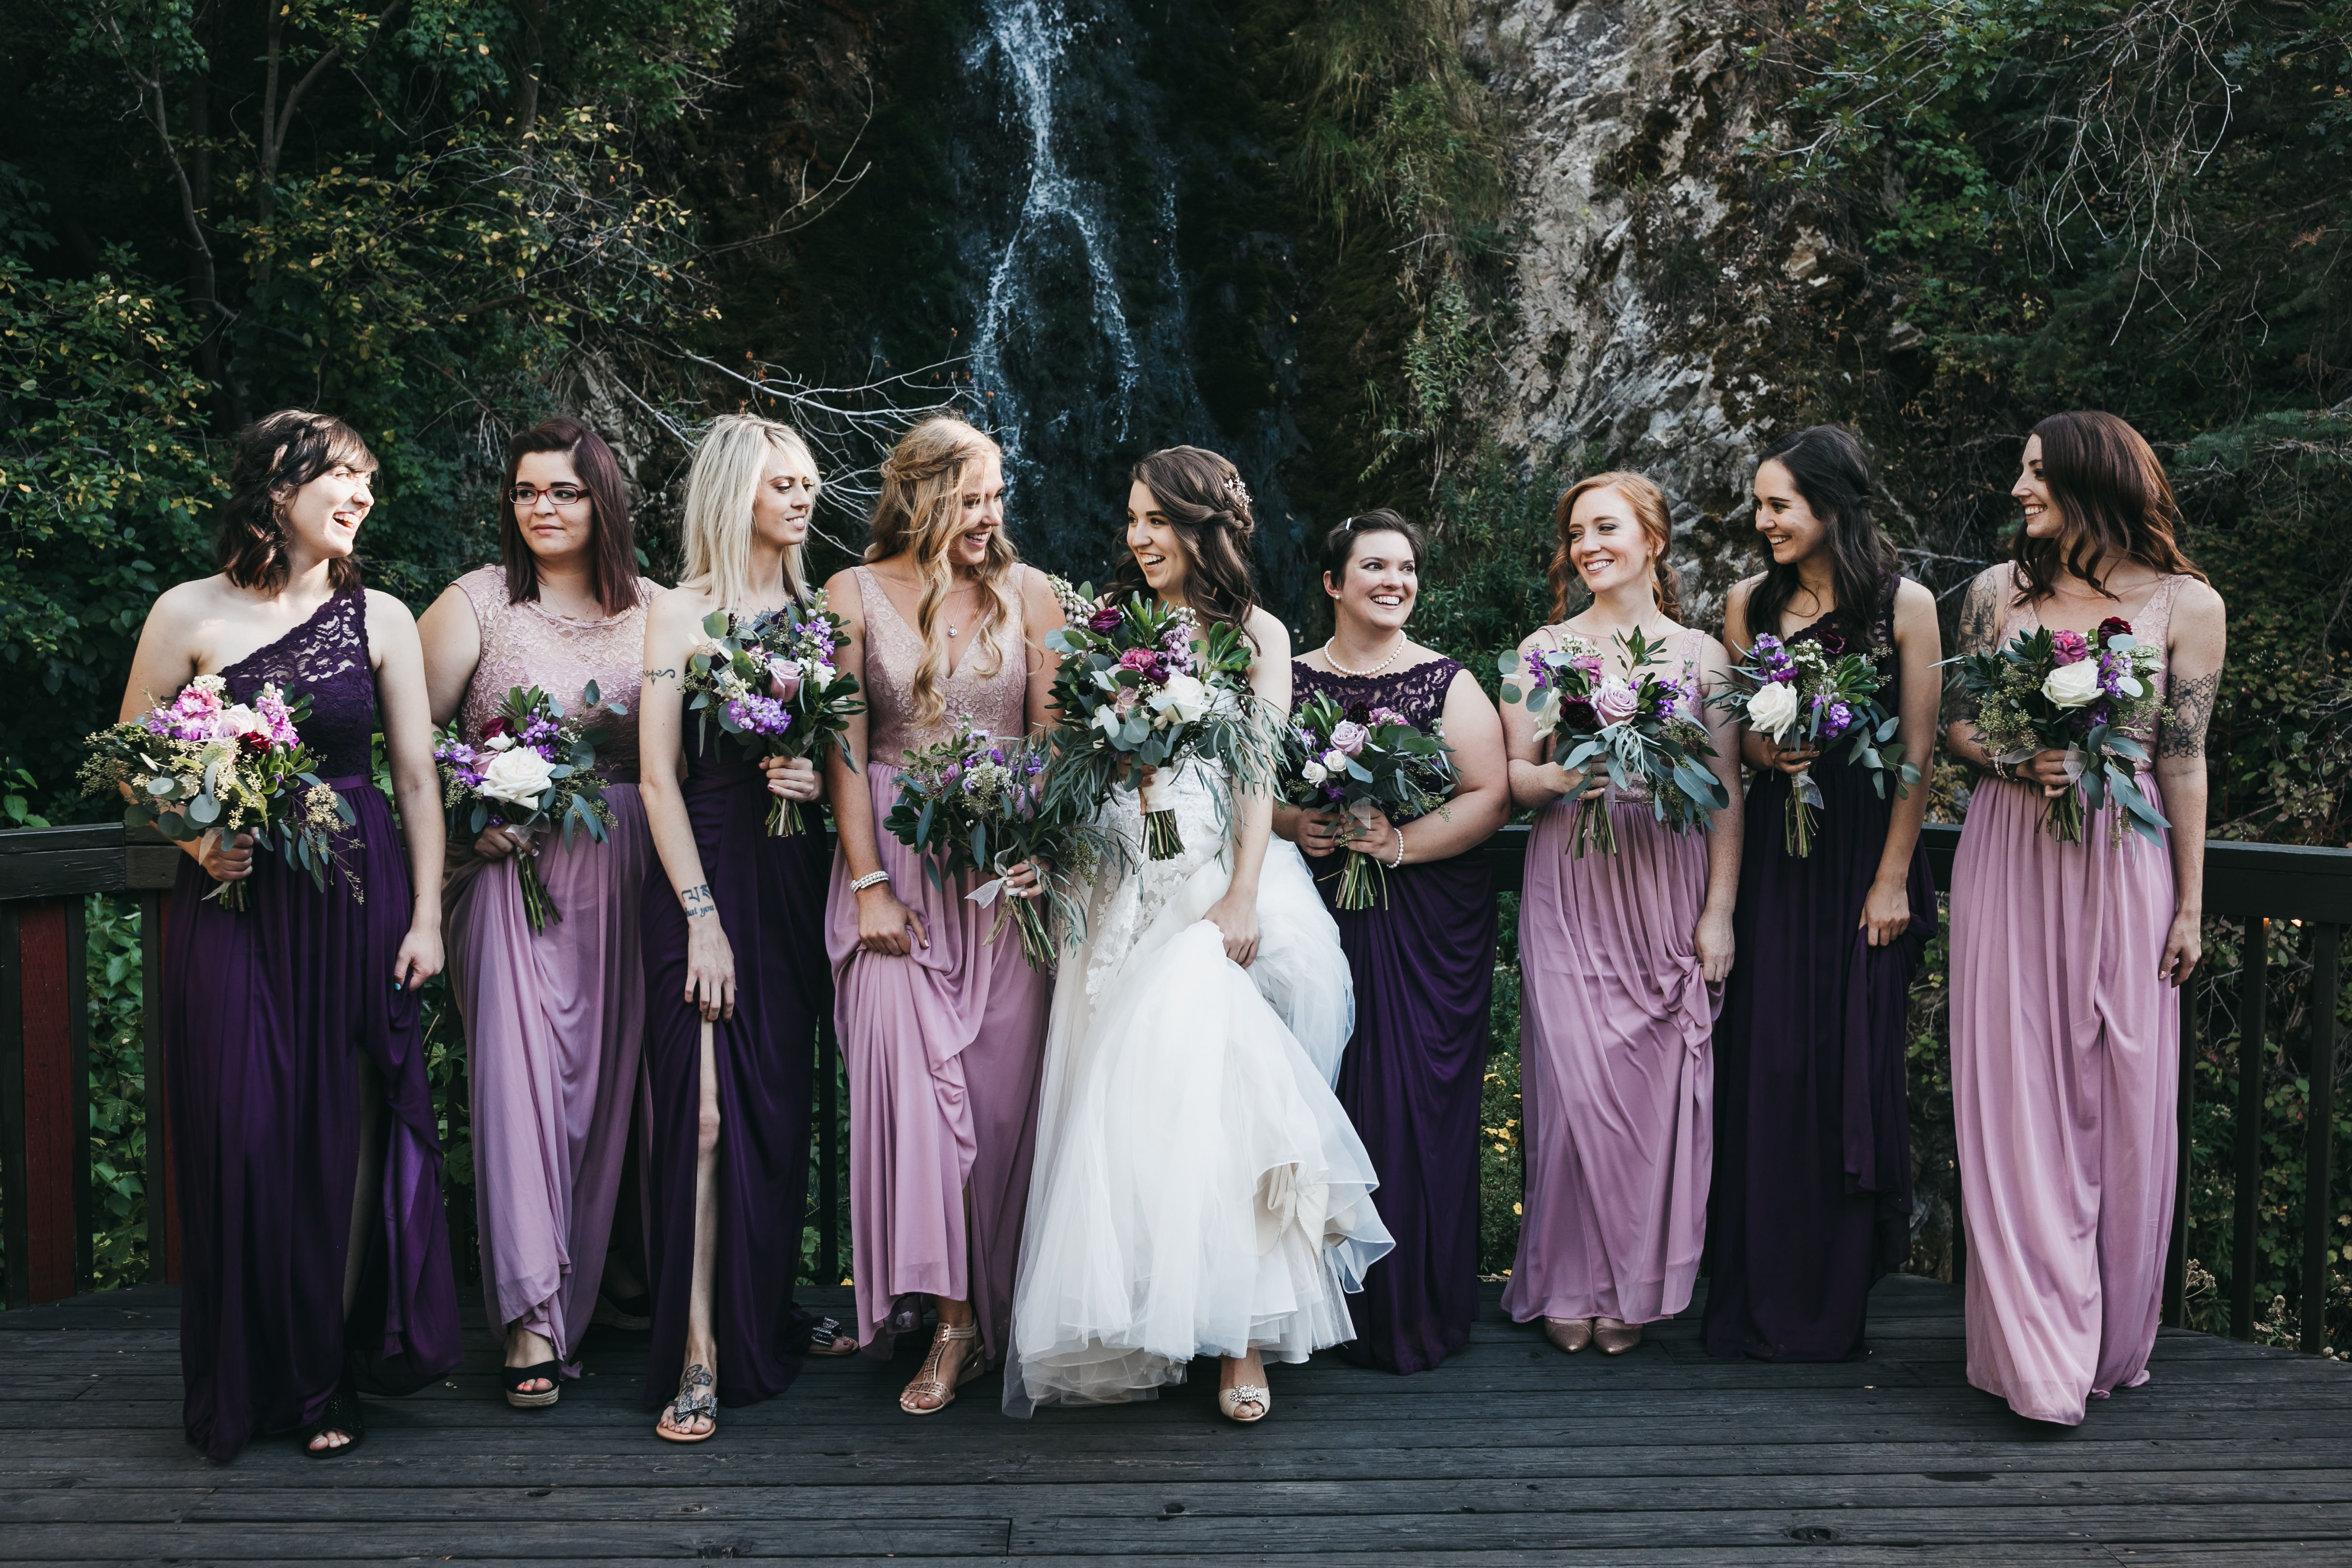 Purple And Rose Gold Colors For Bridesmaid Dresses For An Early